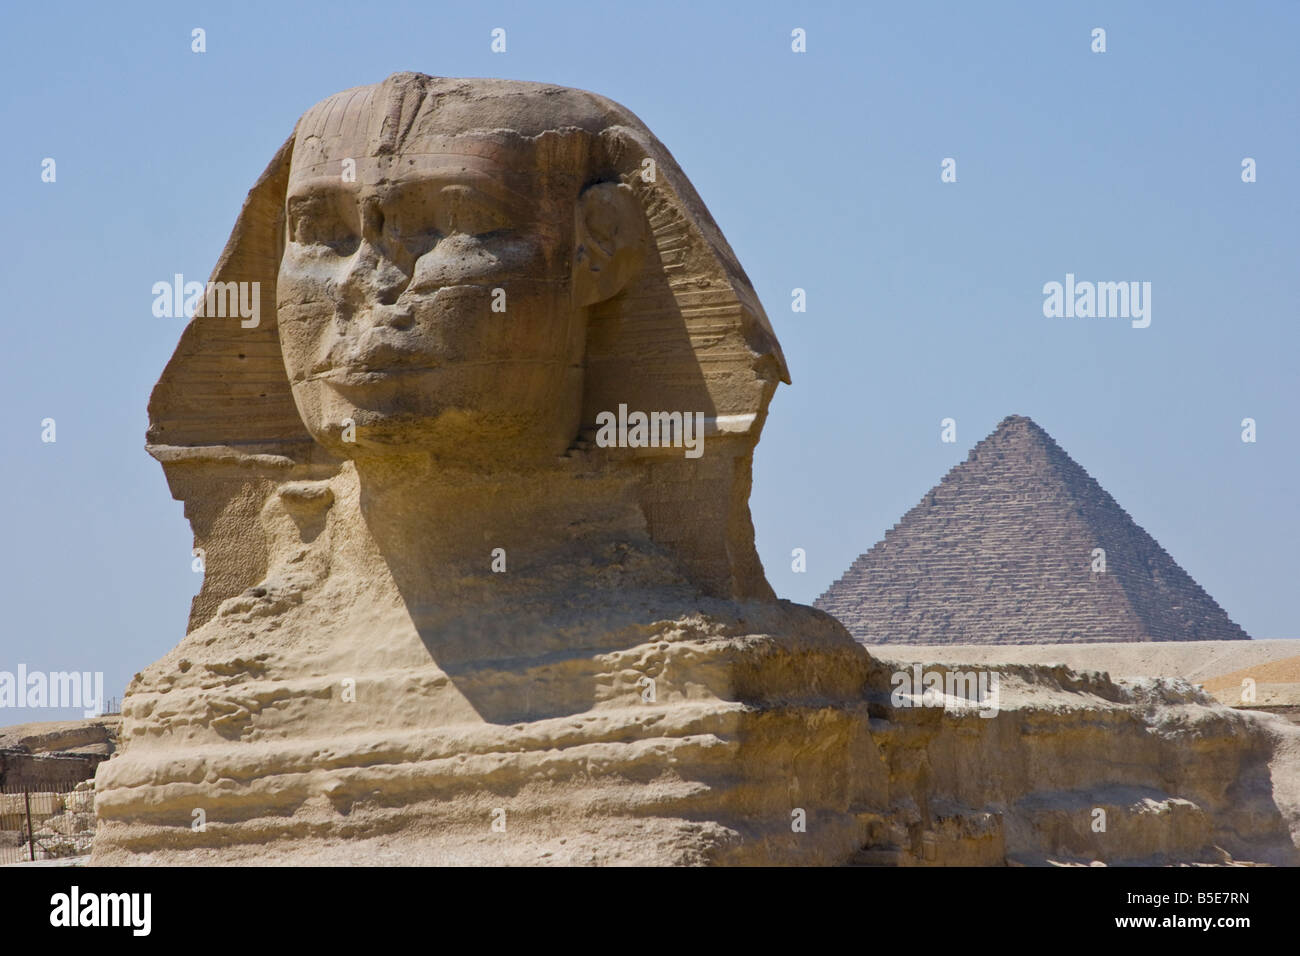 The Sphinx in Giza in Cairo Egypt - Stock Image